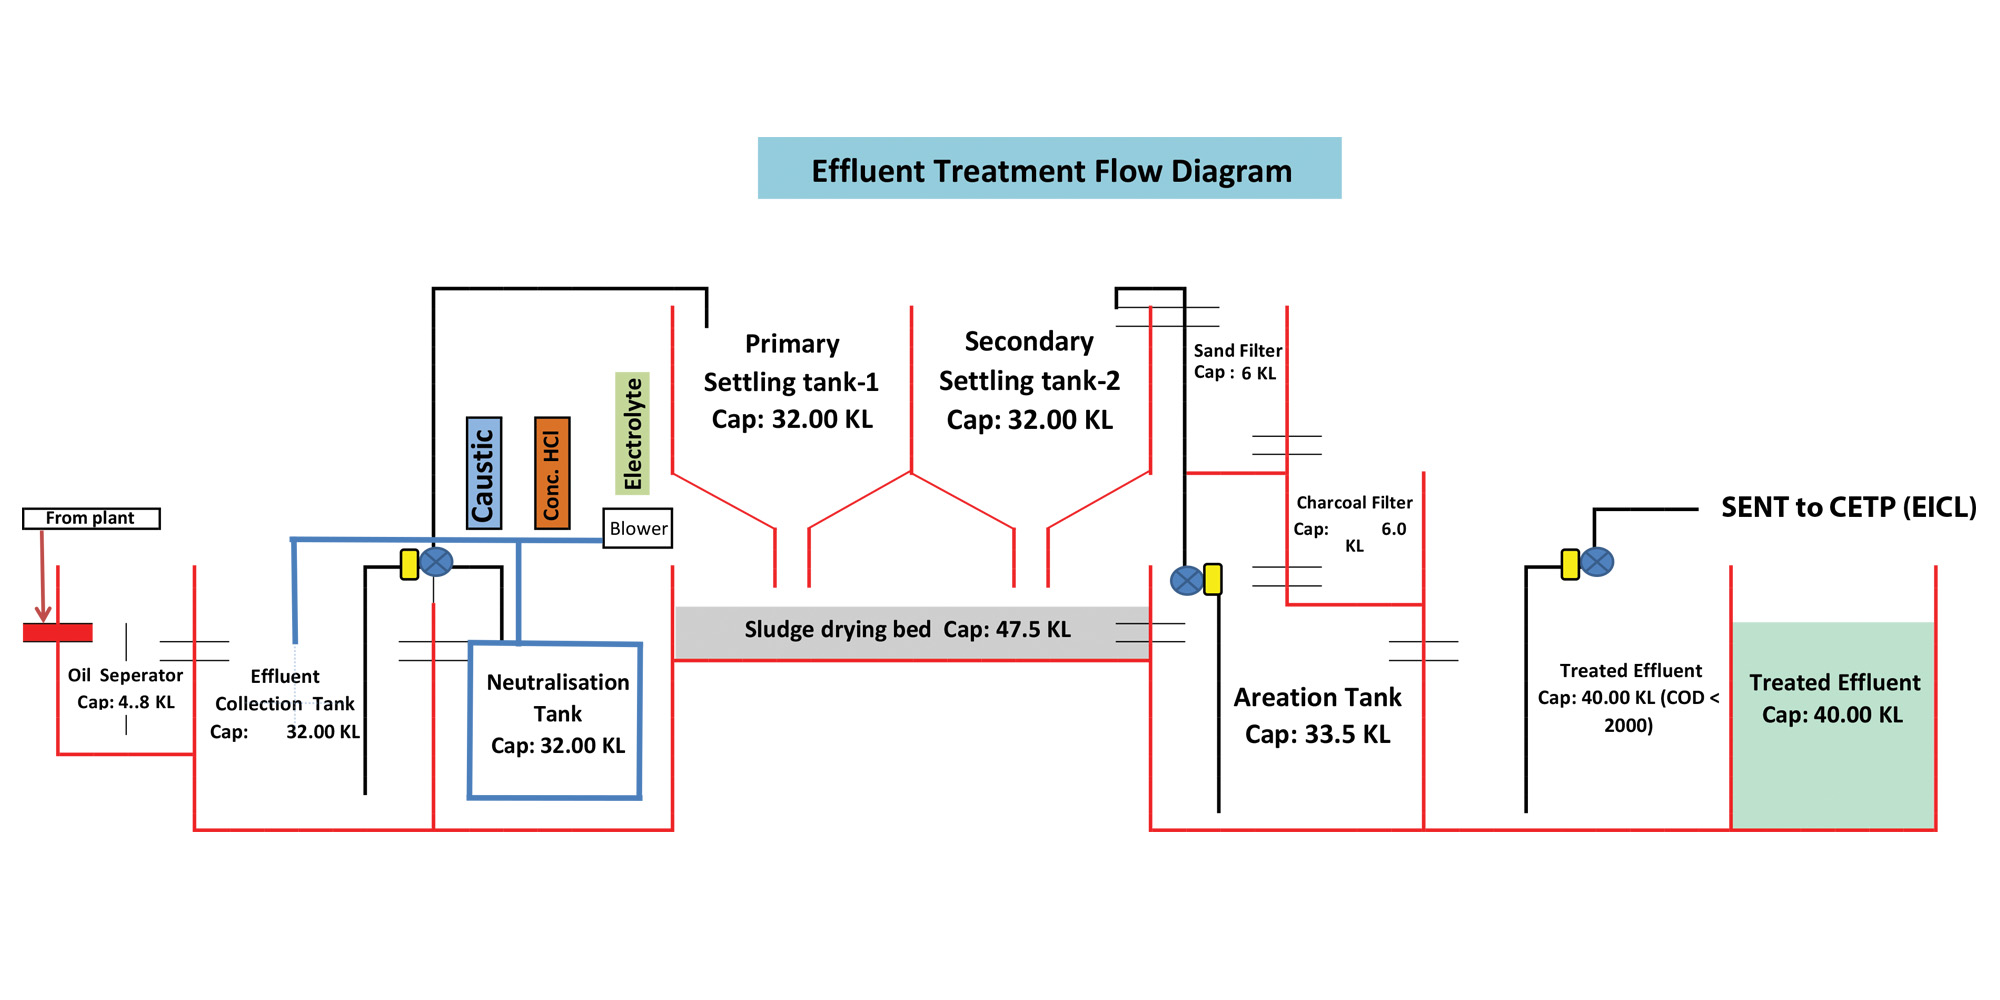 hight resolution of industrial wastewater treatment describes the processes used for treating wastewater that is produced by industries as an undesirable by product